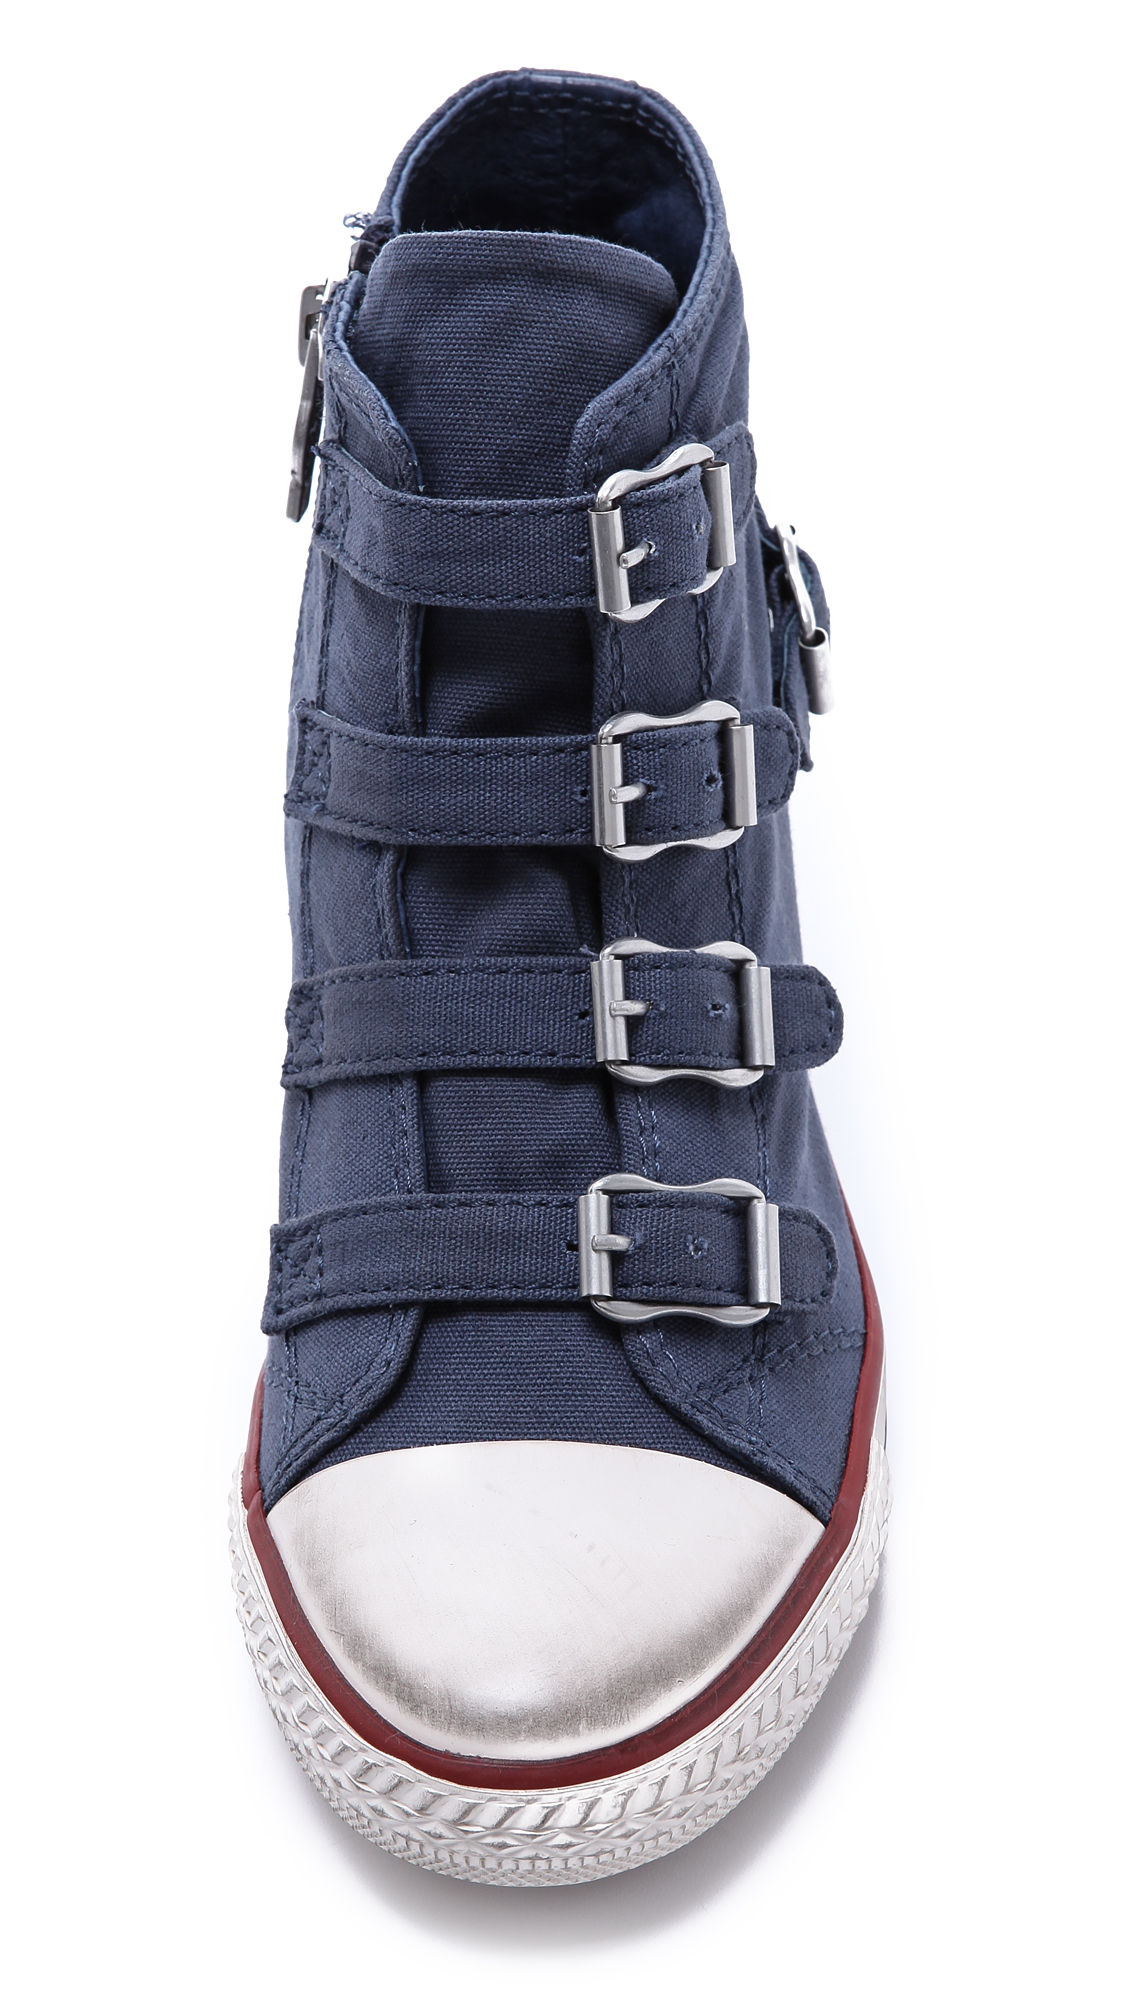 6c2a5e9f6c9 Ash Genial Bis Wedge Sneakers